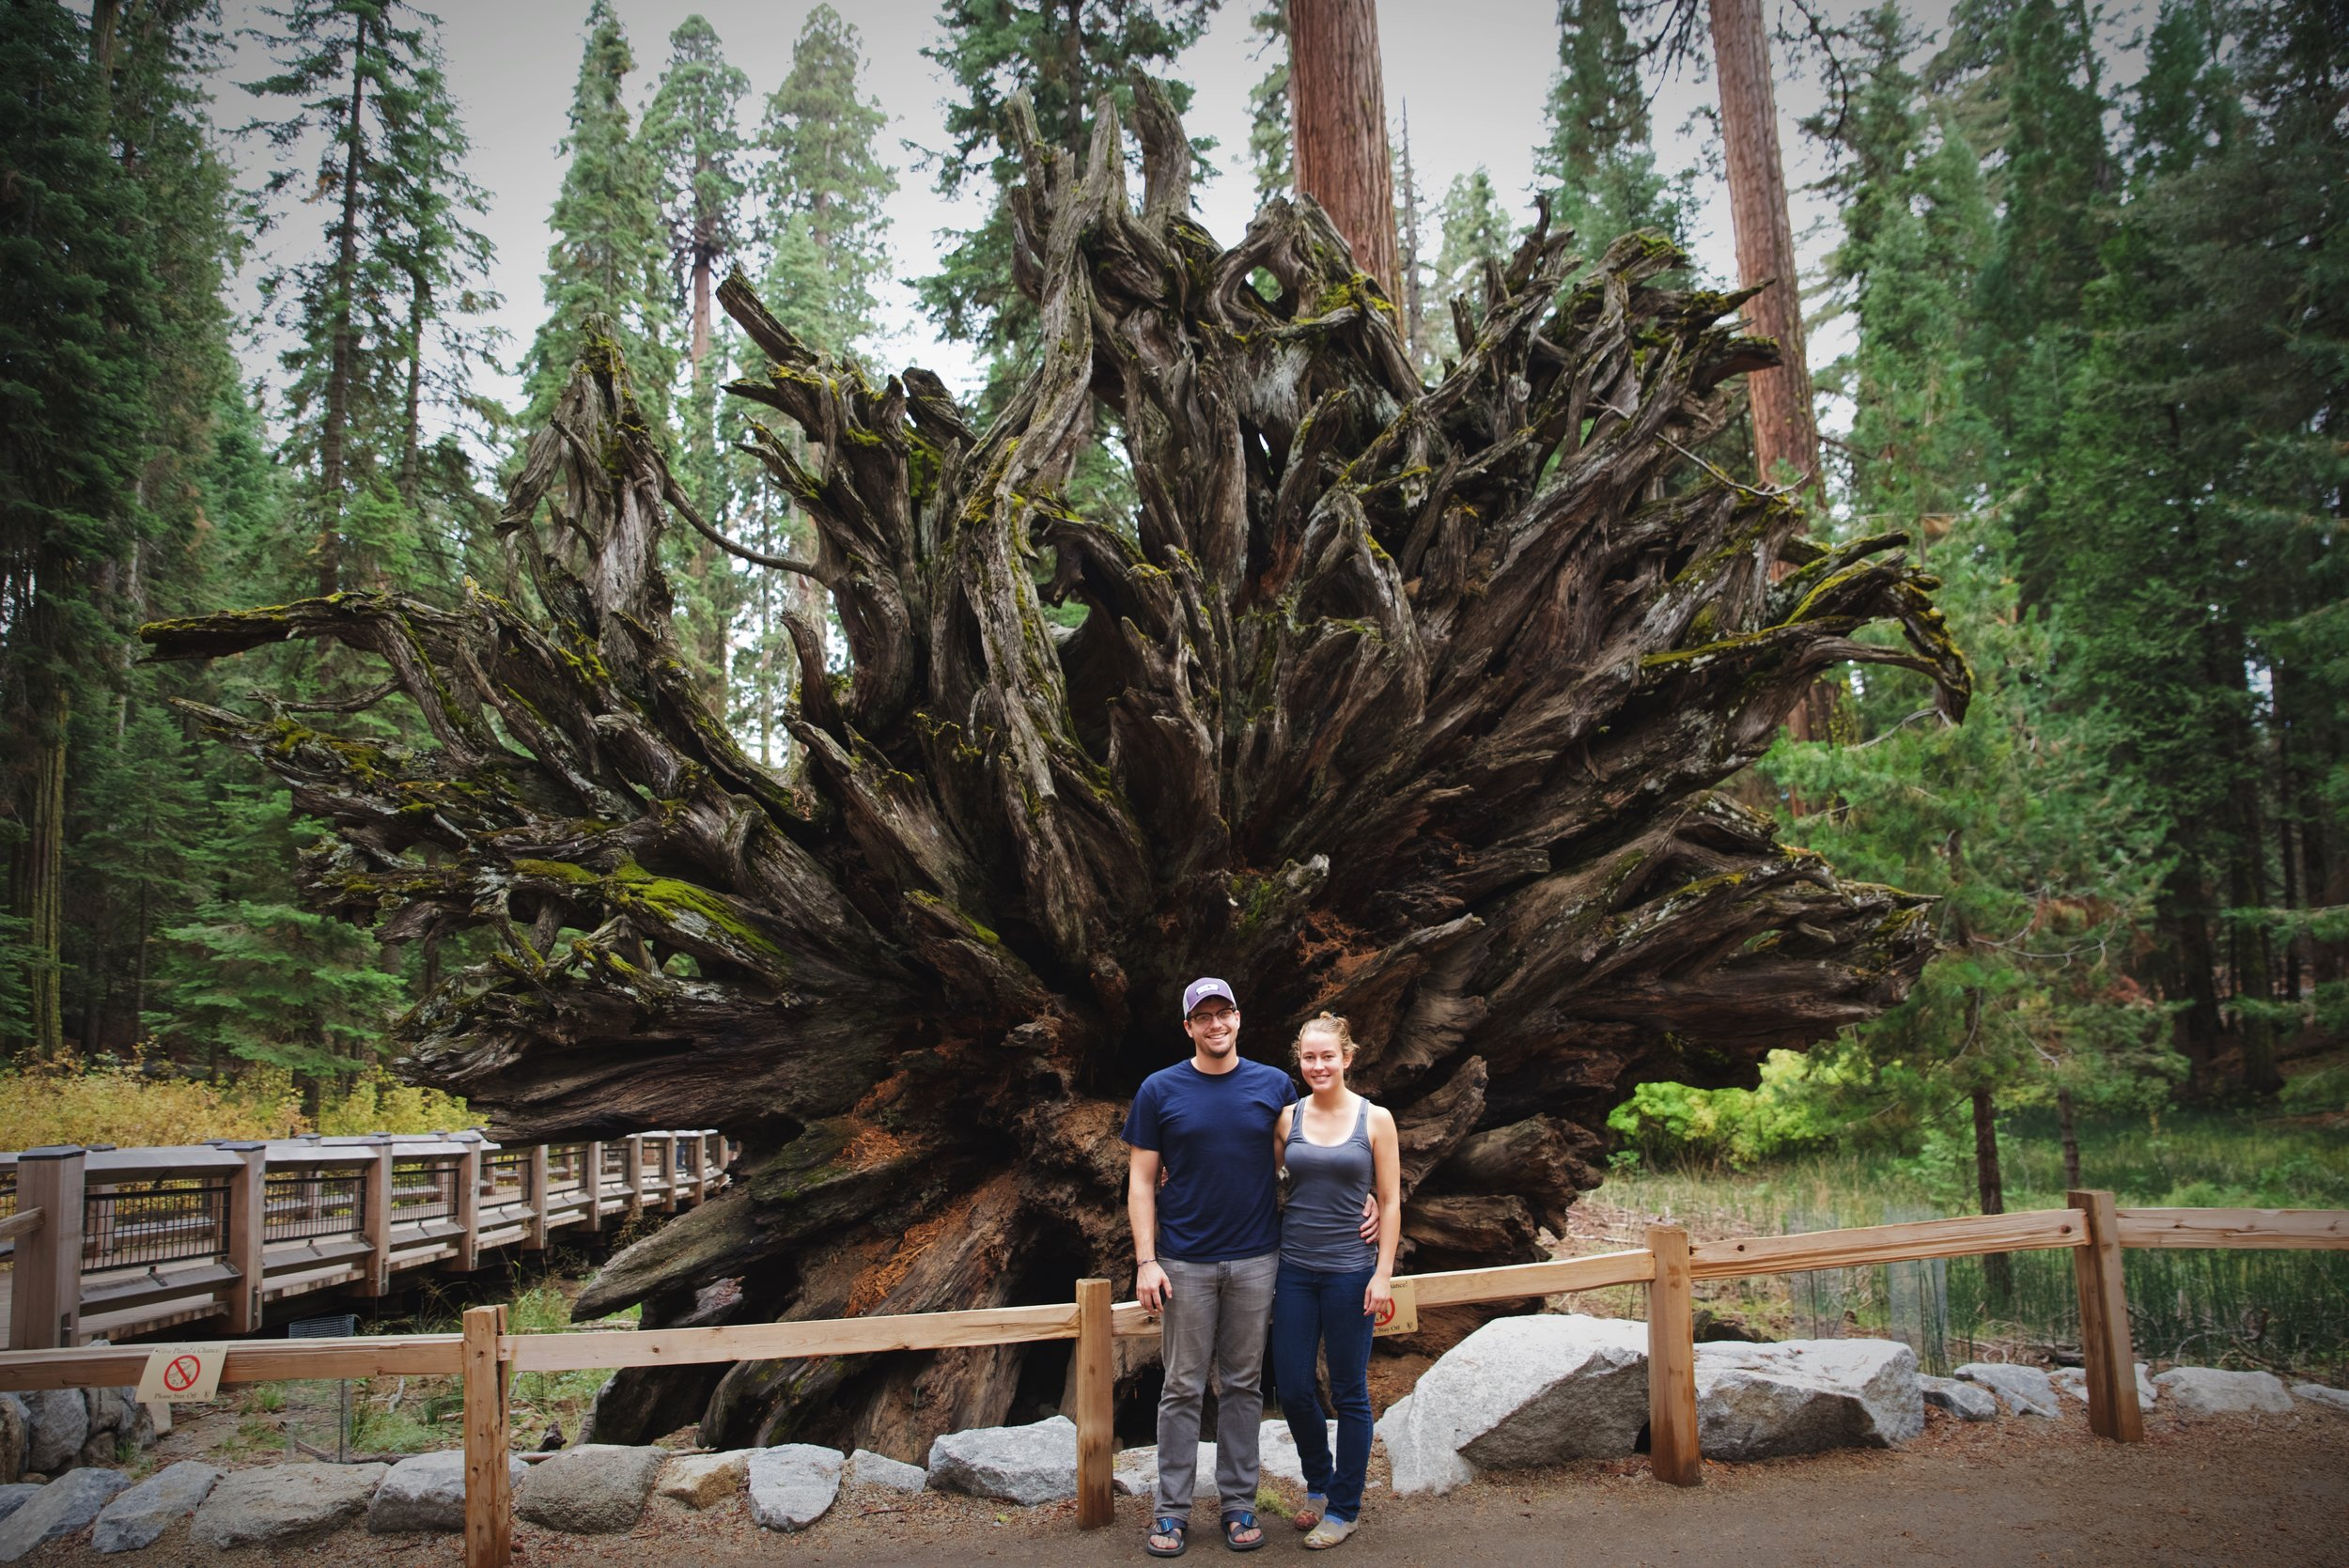 Posing in front of the Fallen Monarch in Mariposa Grove.